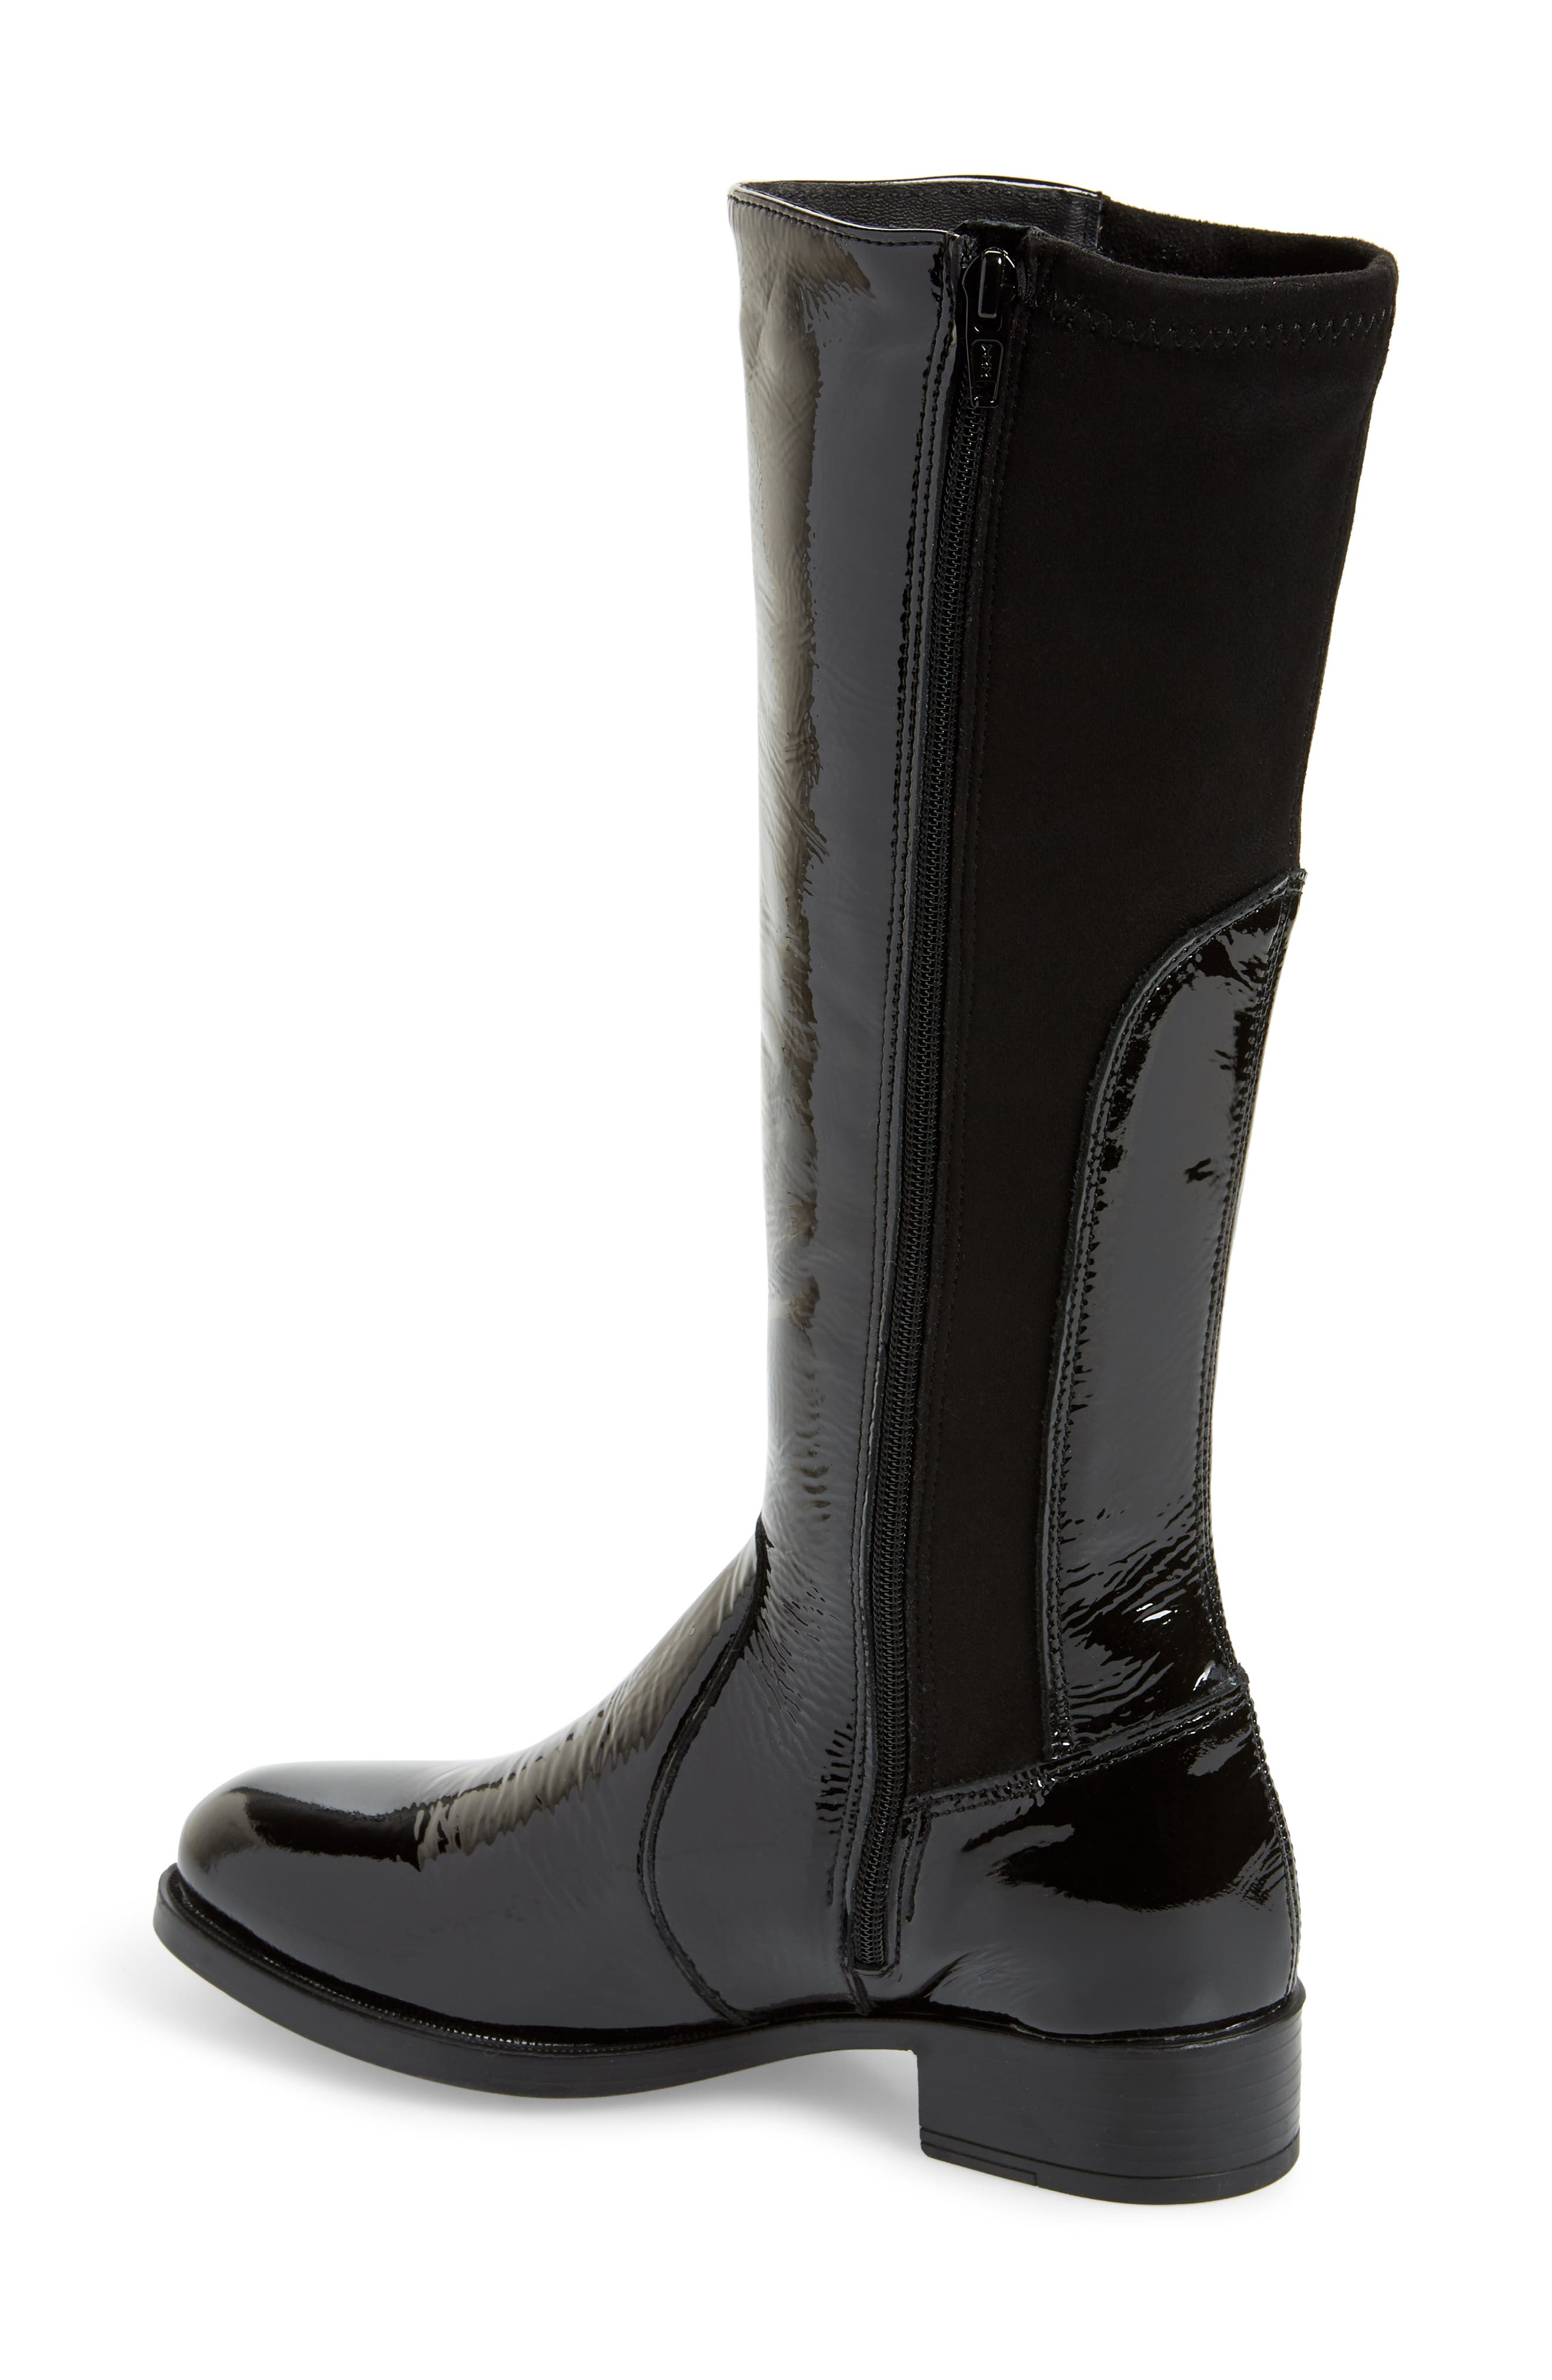 BOS. & CO., Brook Waterproof Knee High Boot, Alternate thumbnail 2, color, BLACK PATENT LEATHER